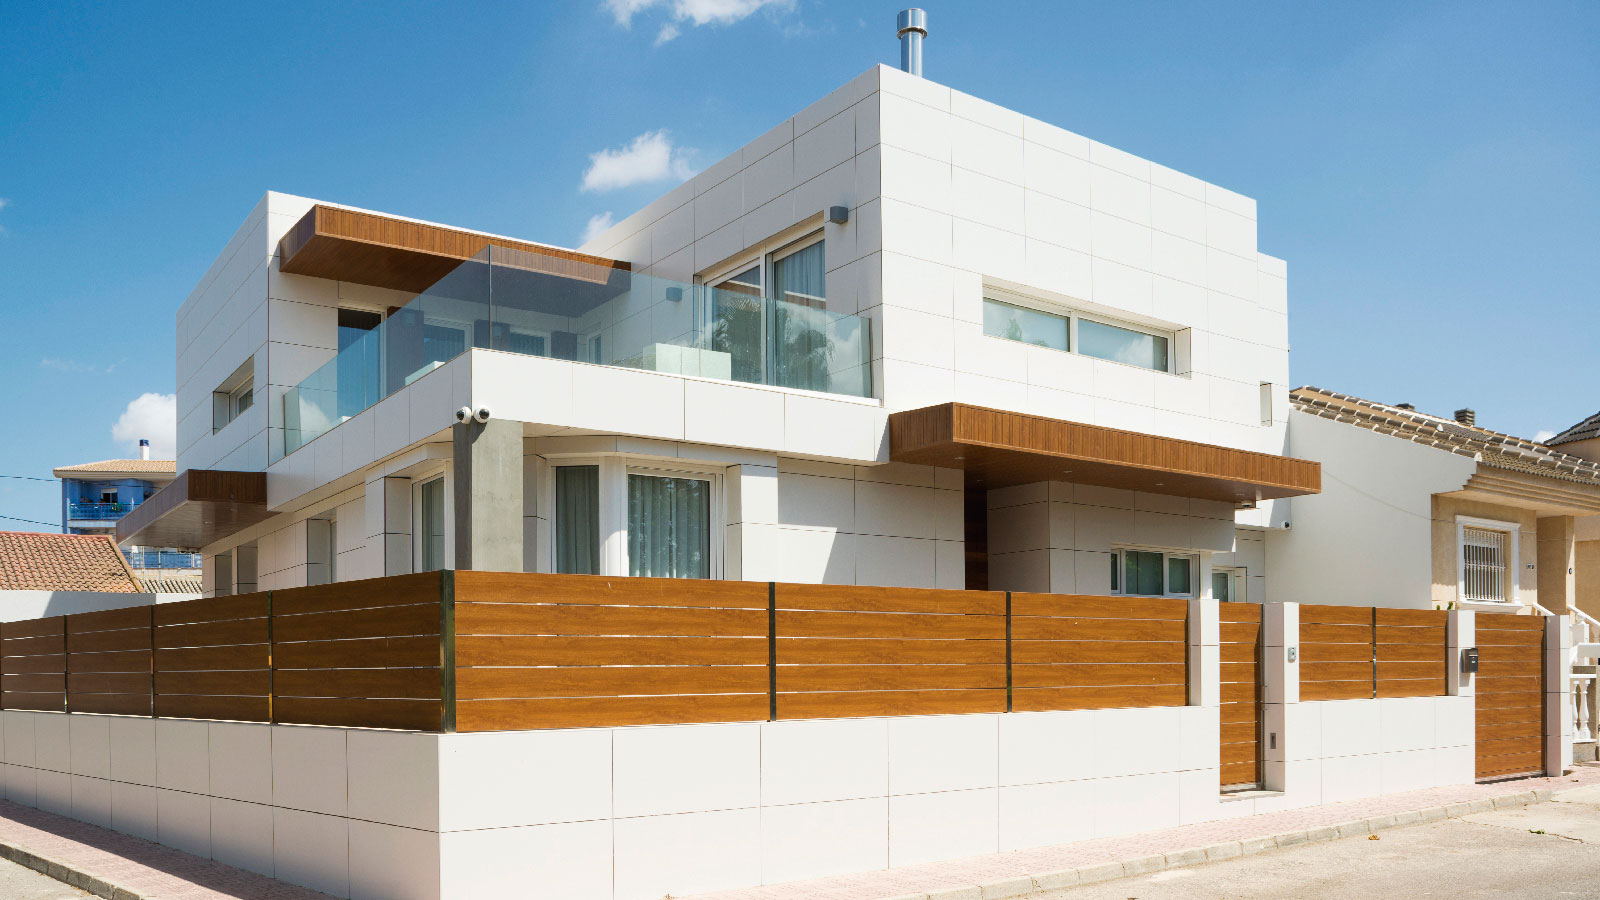 PORCELANOSA Grupo Projects: volume combination for a single-family home in Murcia